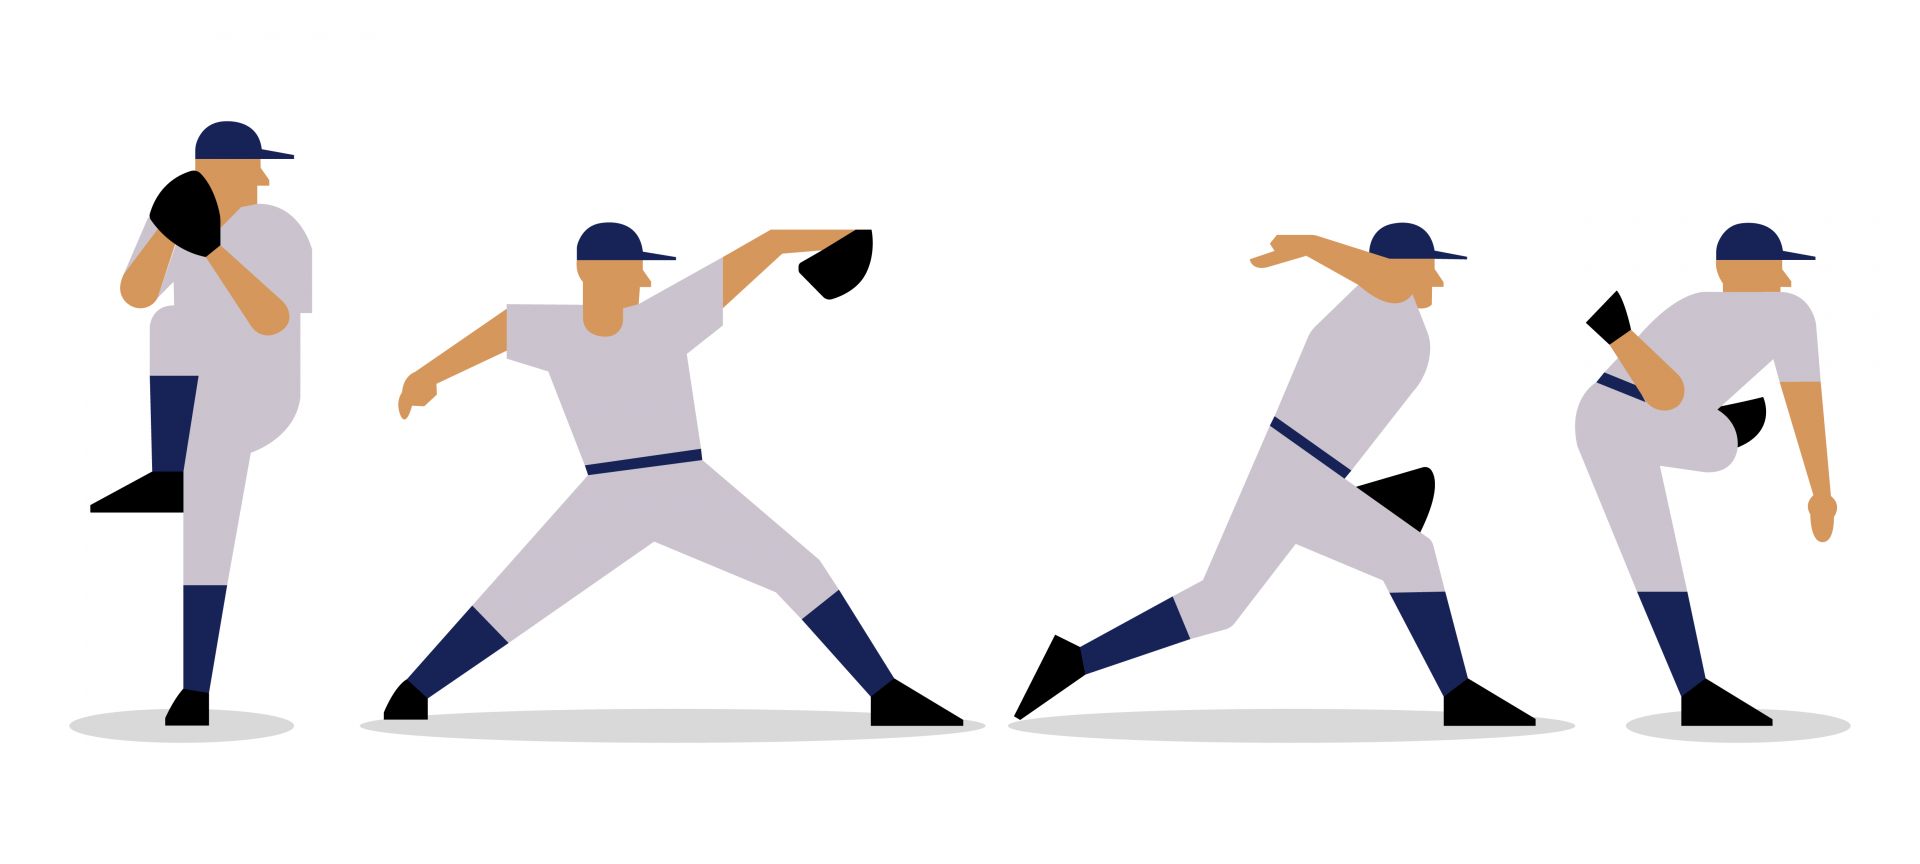 Illustration of the phases of a pitchers throw.